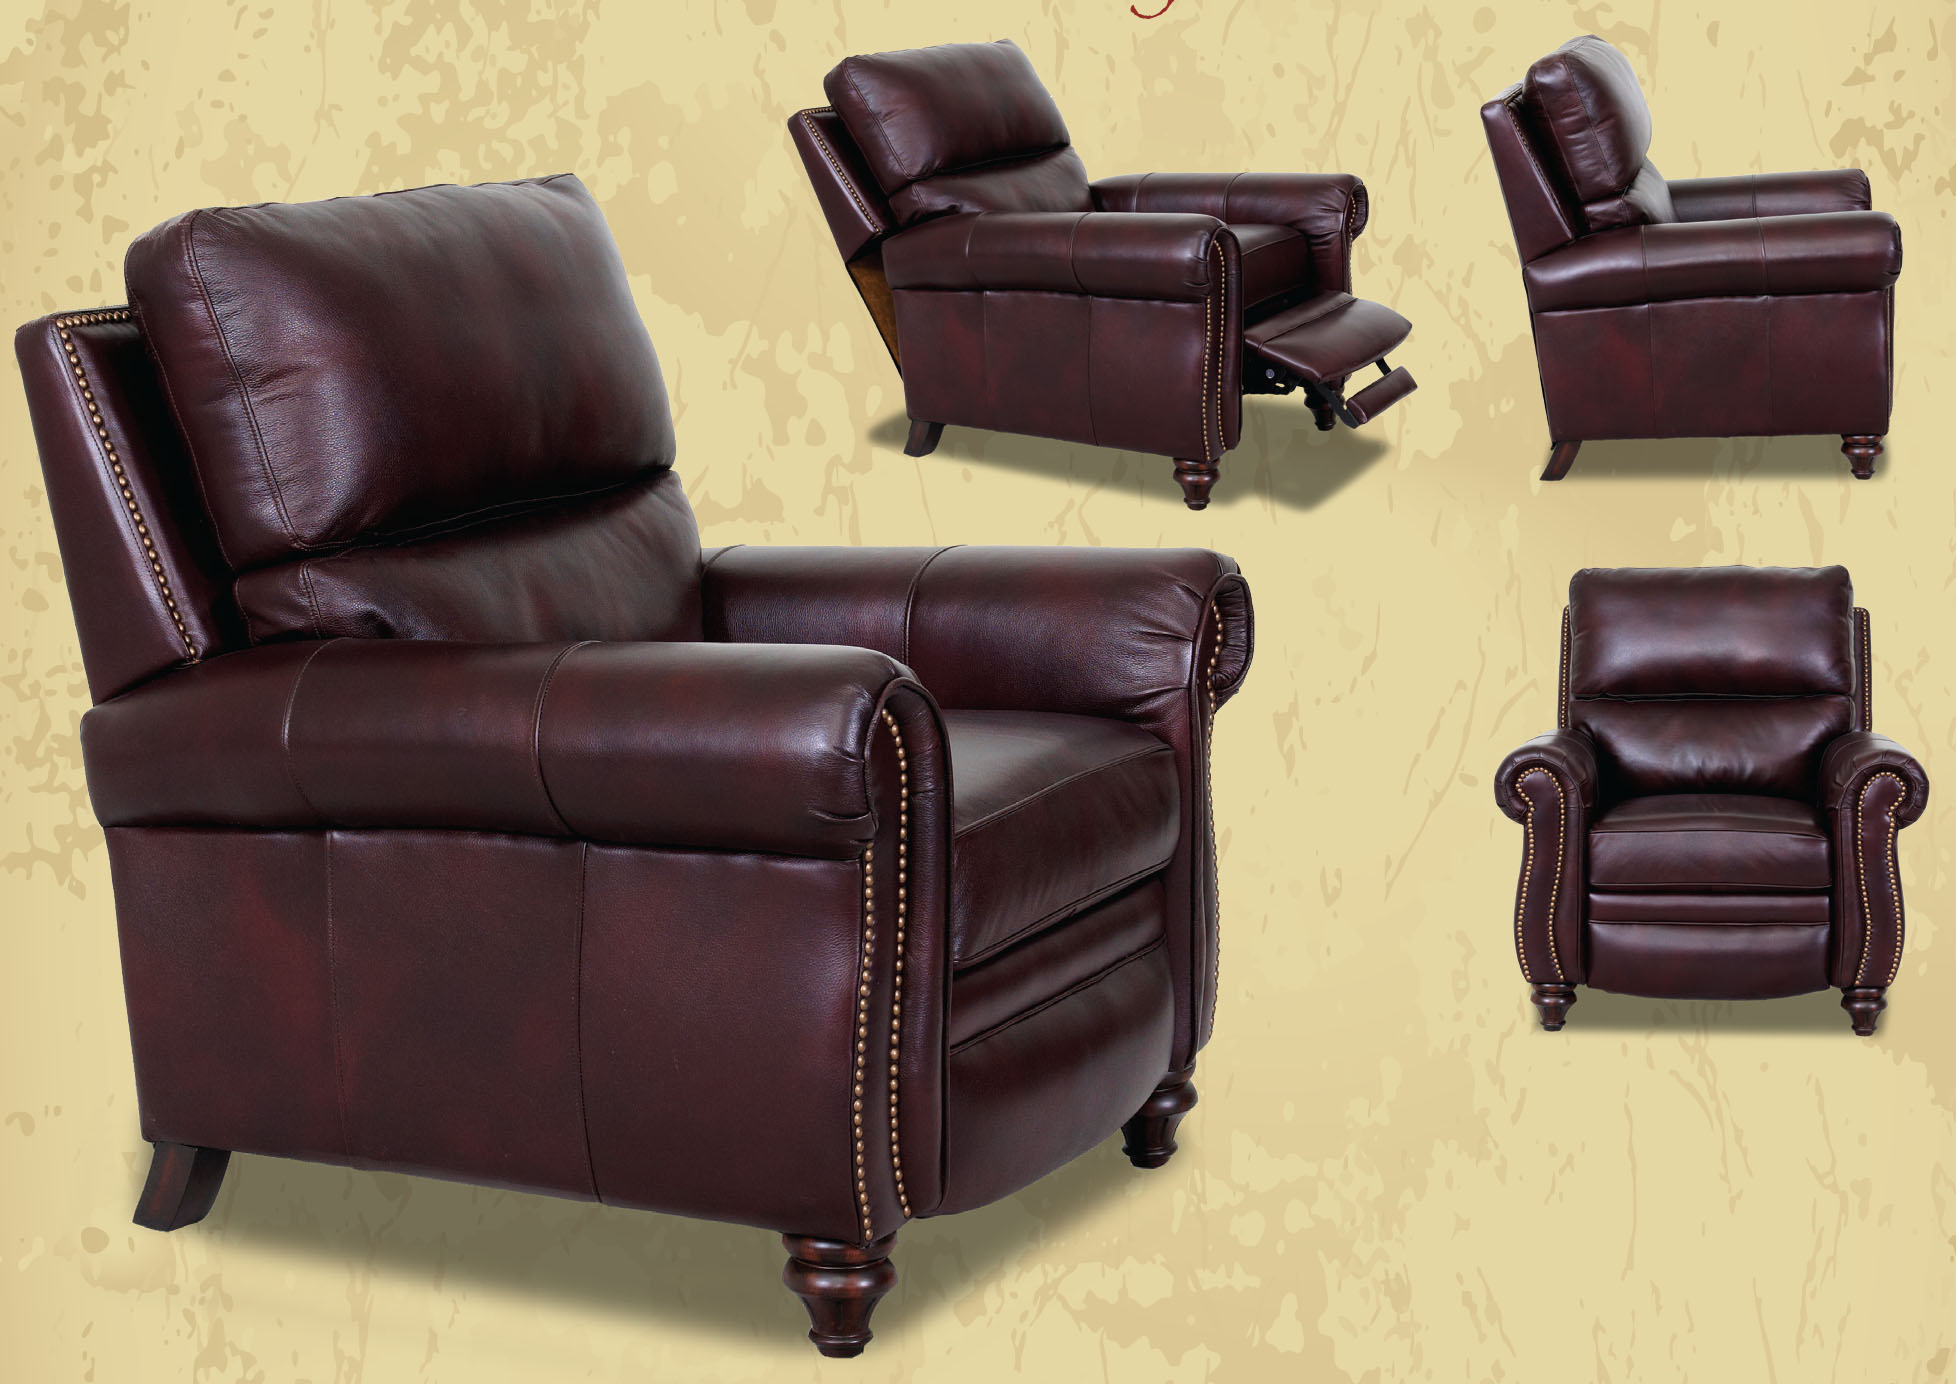 sofa warehouse manchester what can i use to clean a cream leather barcalounger dalton ii recliner chair